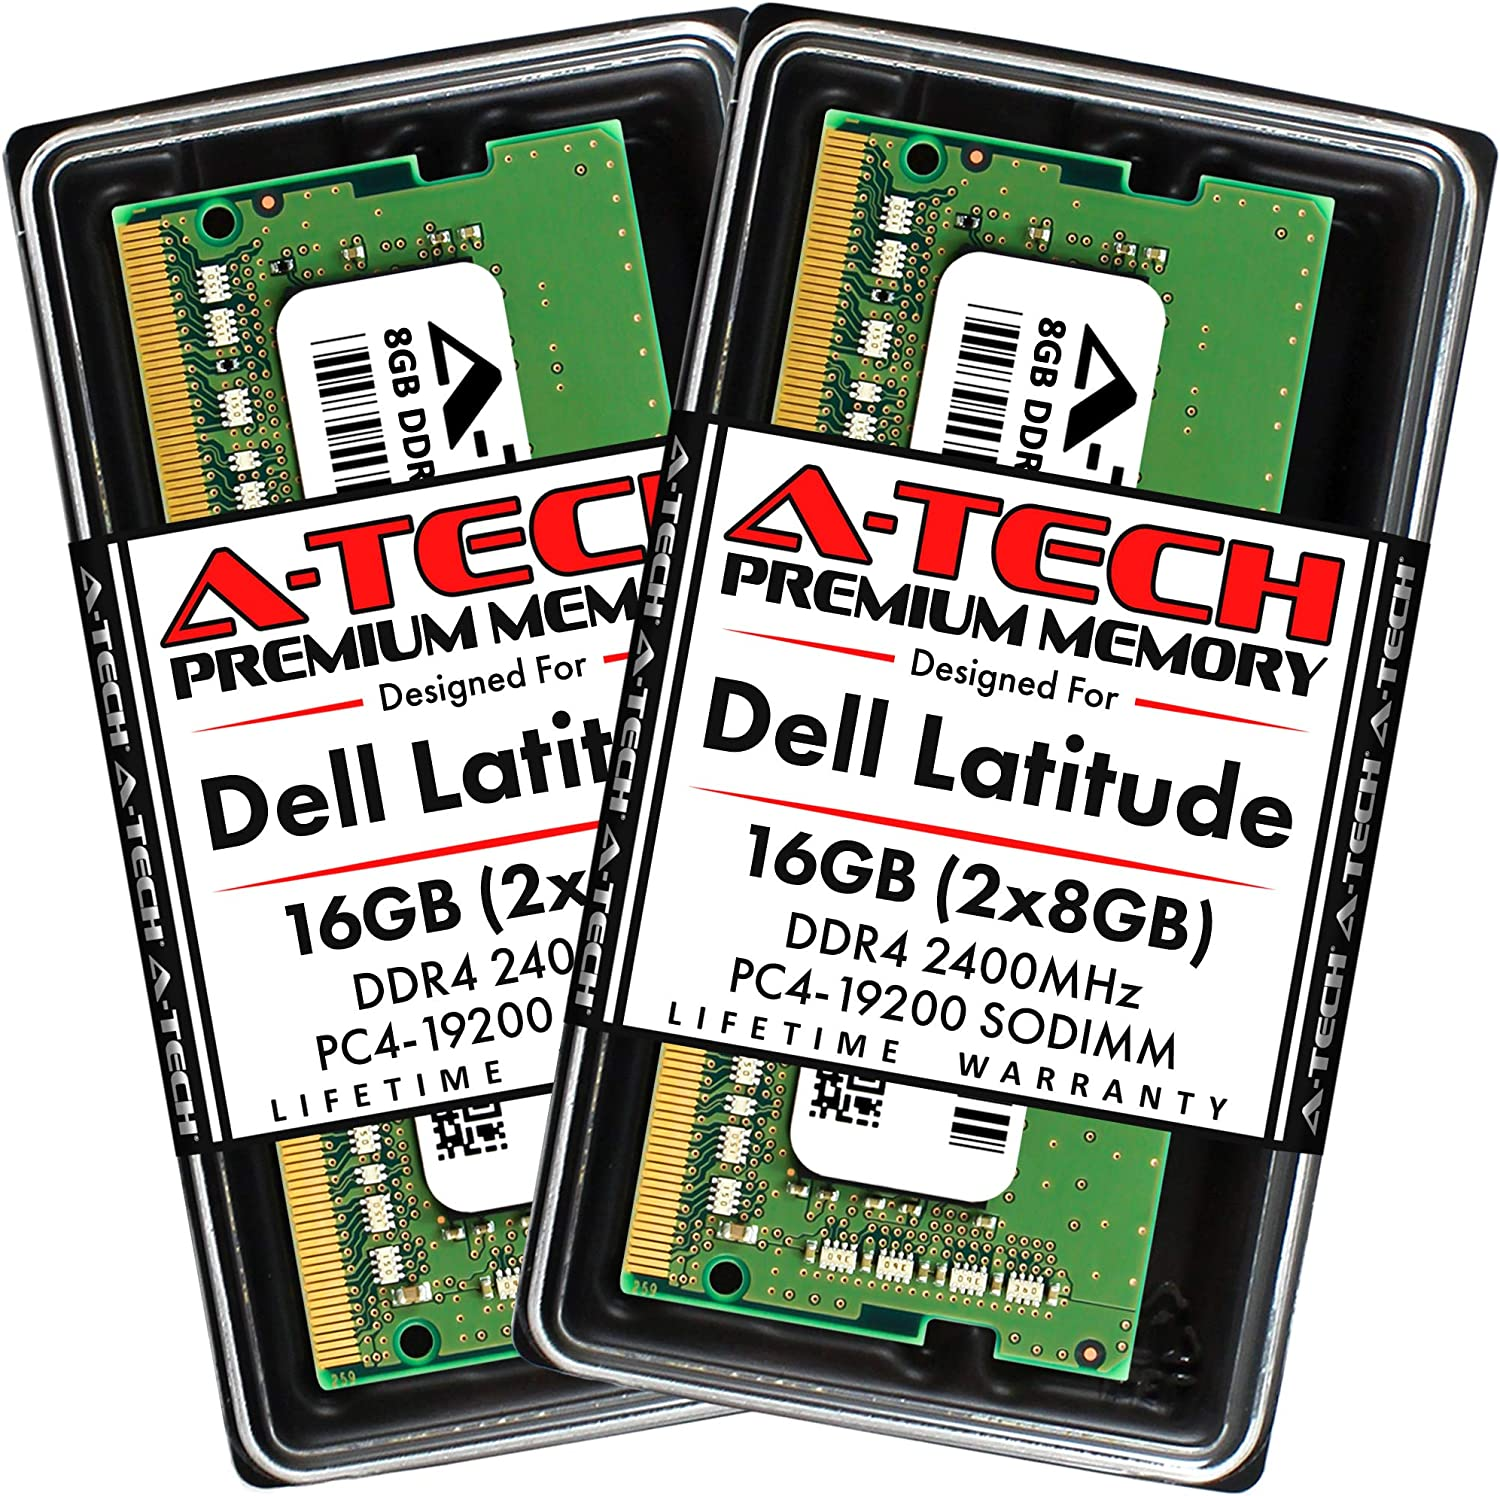 A-Tech 16GB 2x8GB RAM We OFFer at cheap prices for Dell 7400 5500 5400 Columbus Mall 7300 Latitude